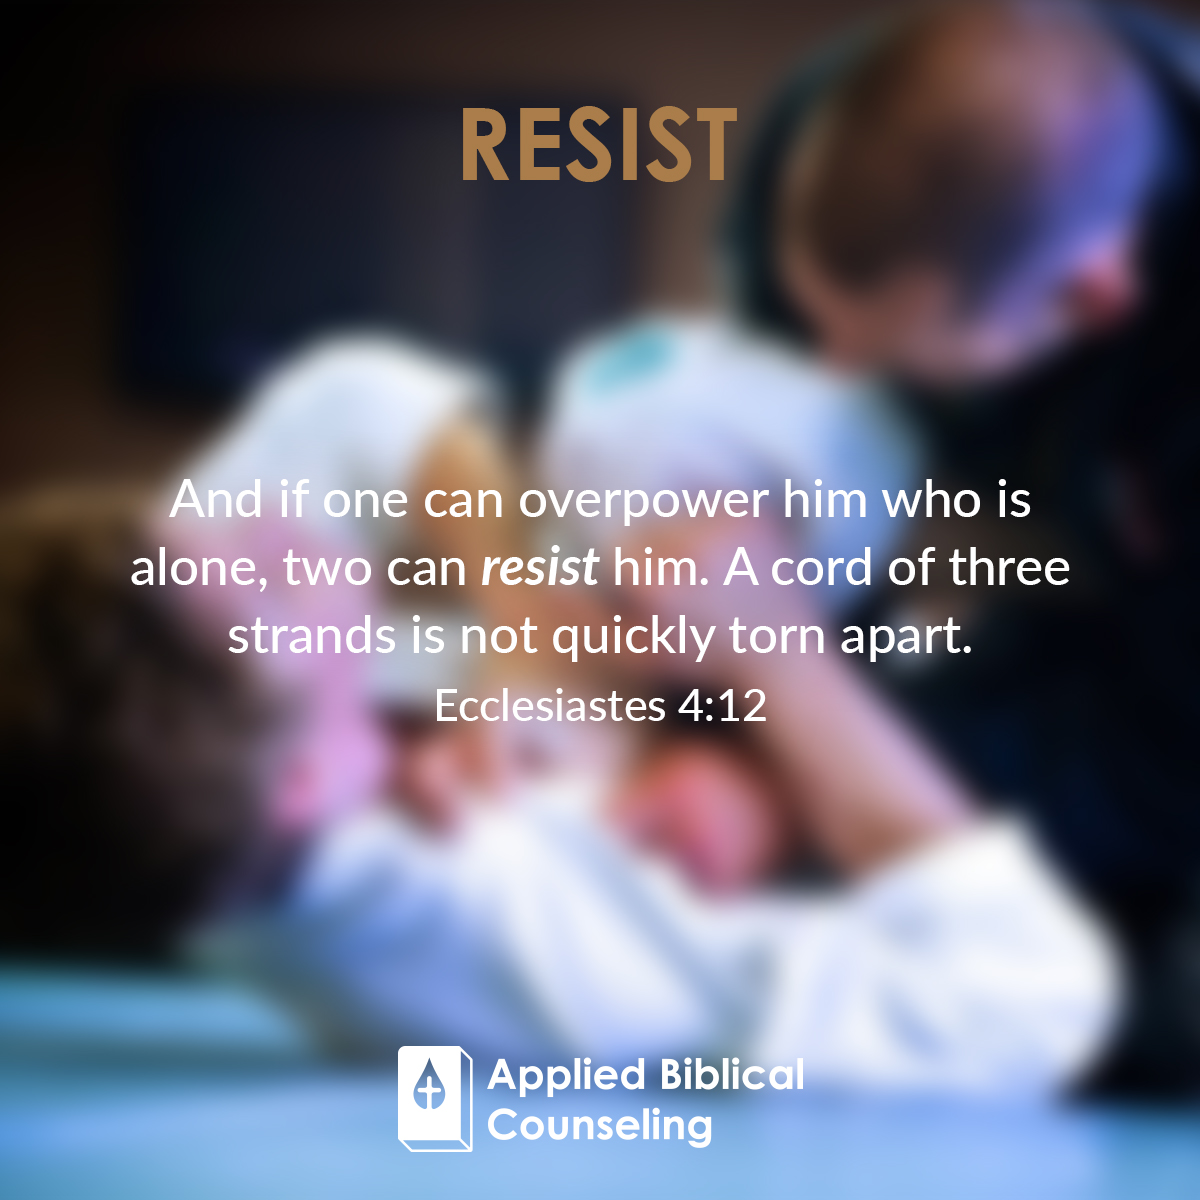 Resist Applied Biblical Counseling 5